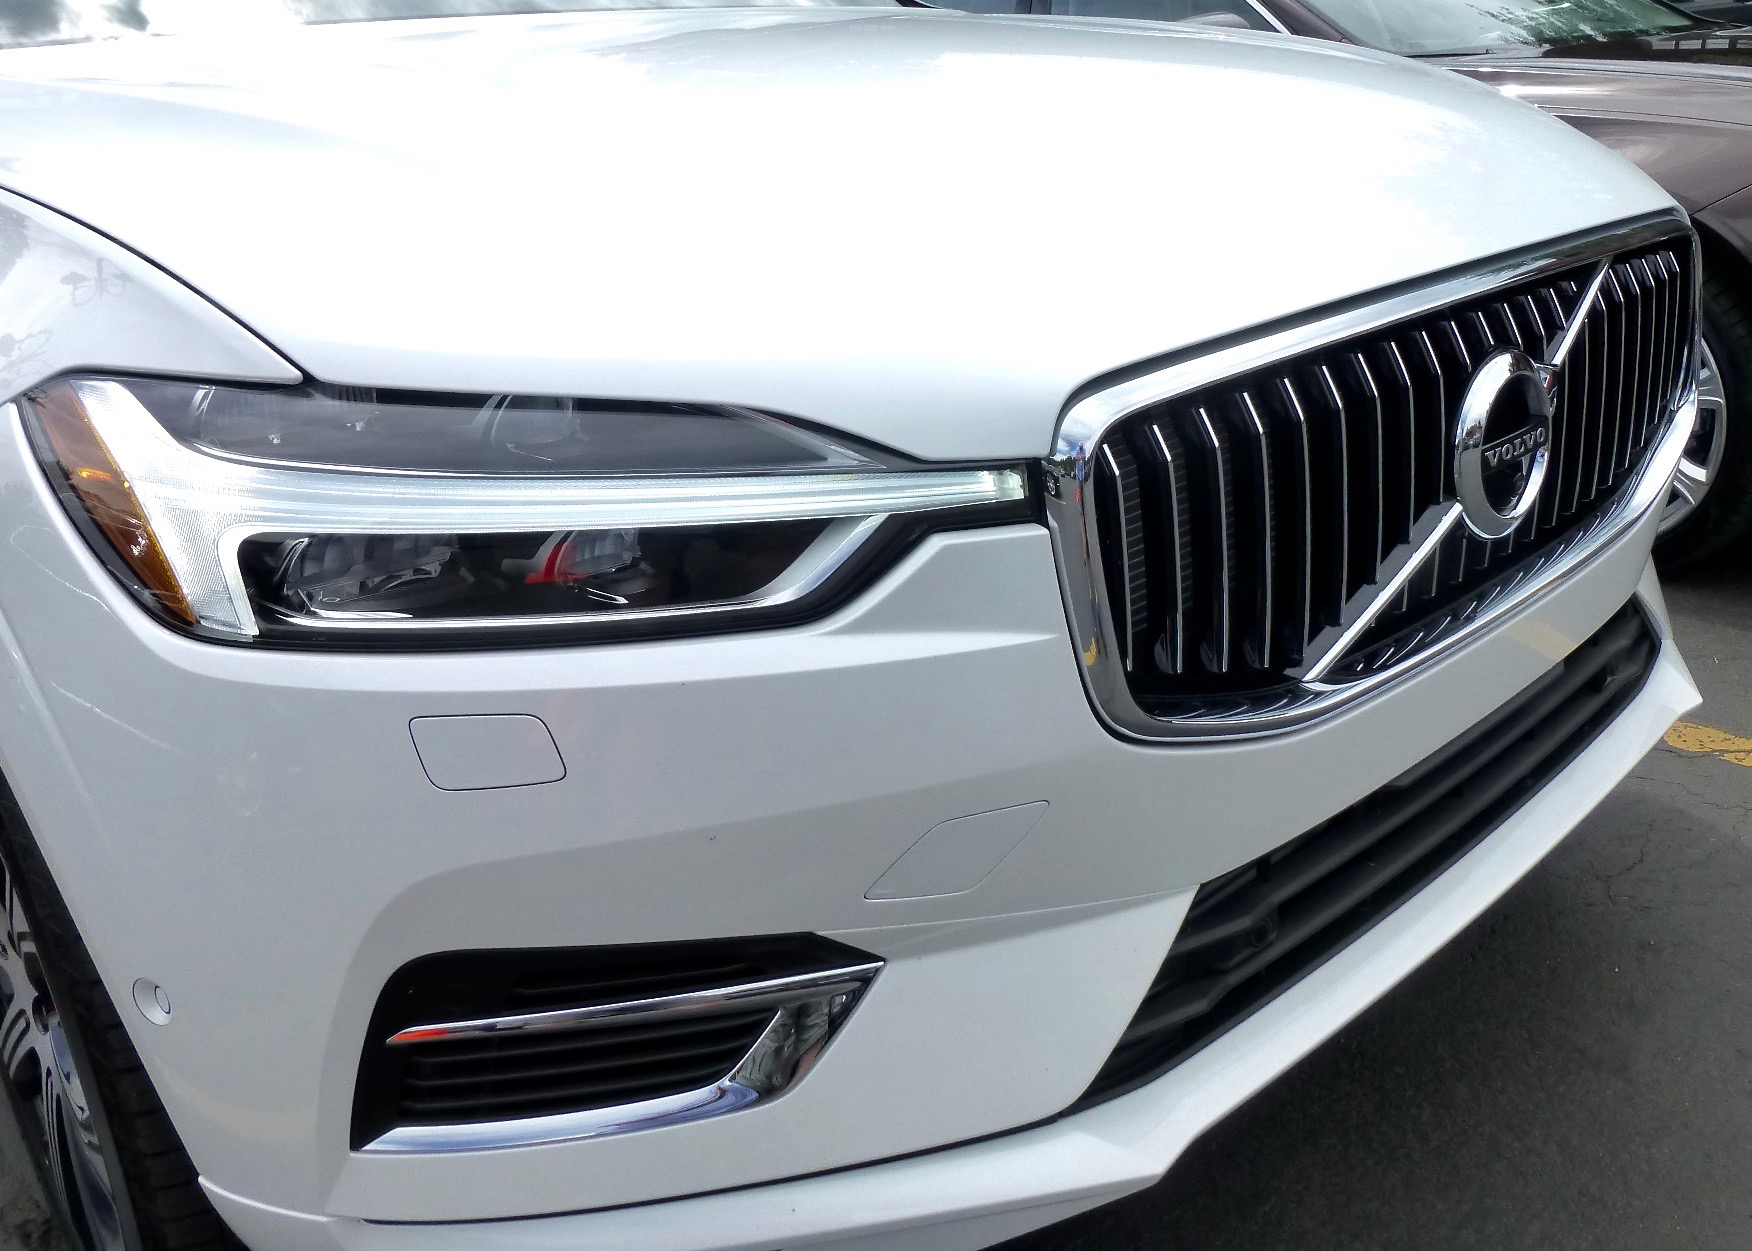 Thor's Hammer light design, familiar grille denote new-breed Volvos.